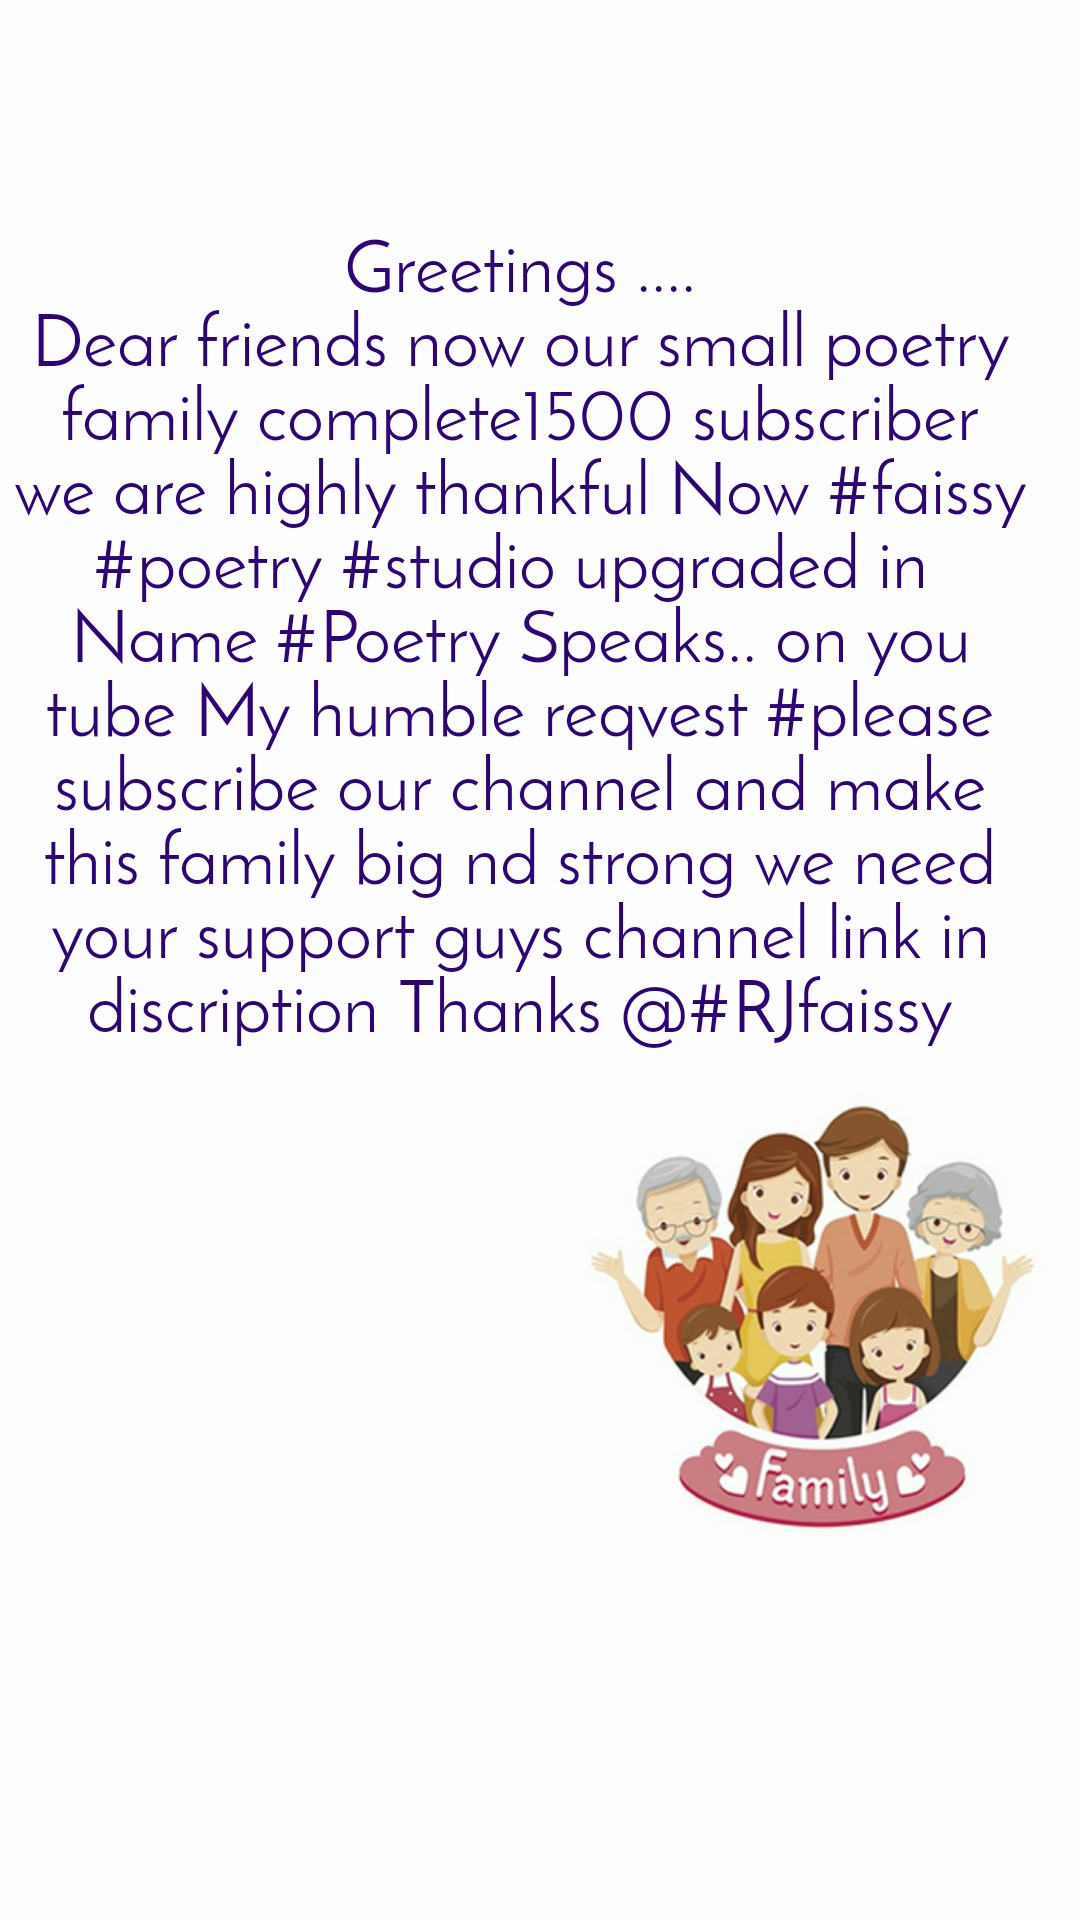 Greetings .... Dear friends now our small poetry family complete1500 subscriber we are highly thankful Now #faissy #poetry #studio upgraded in  Name #Poetry Speaks.. on you tube My humble reqvest #please subscribe our channel and make this family big nd strong we need your support guys channel link in discription Thanks @#RJfaissy